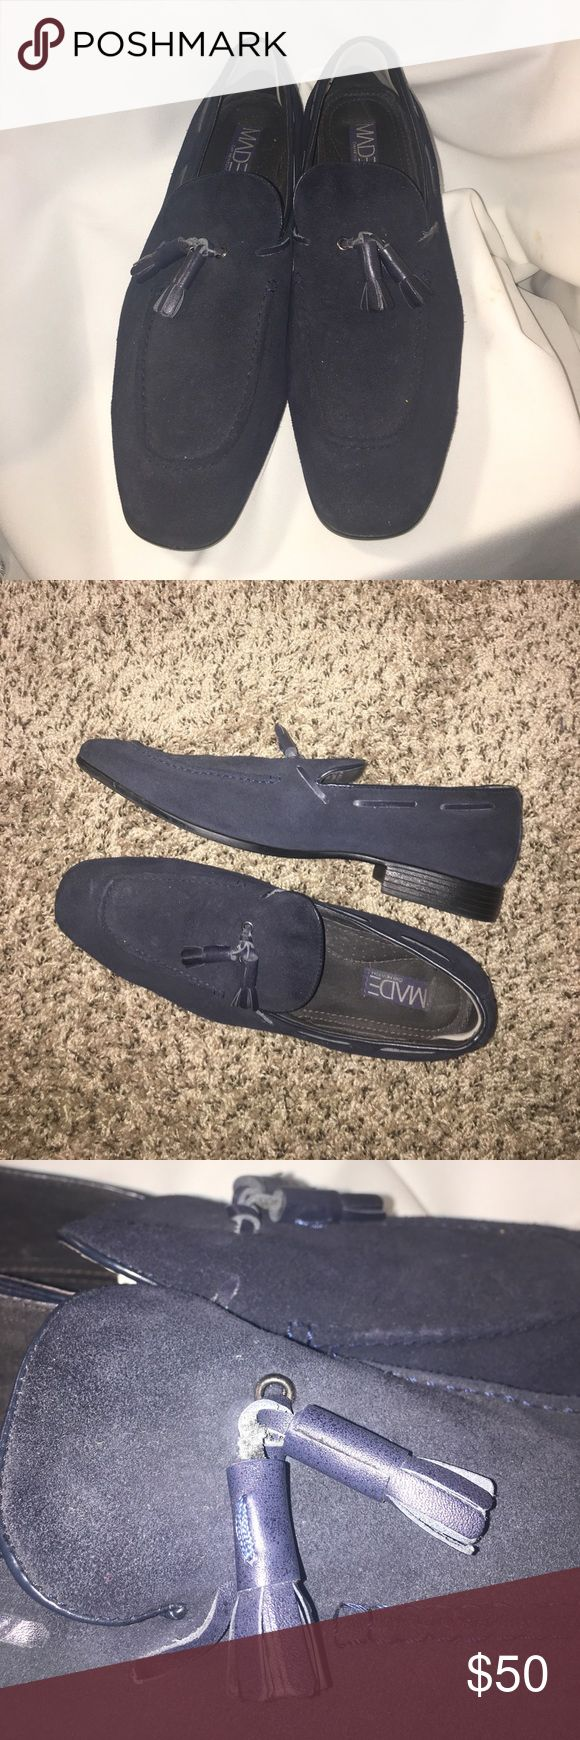 Cam Newton MADE suede loafers Cam Newton MADE suede loafers Cam Newton MADE Shoes Loafers & Slip-Ons